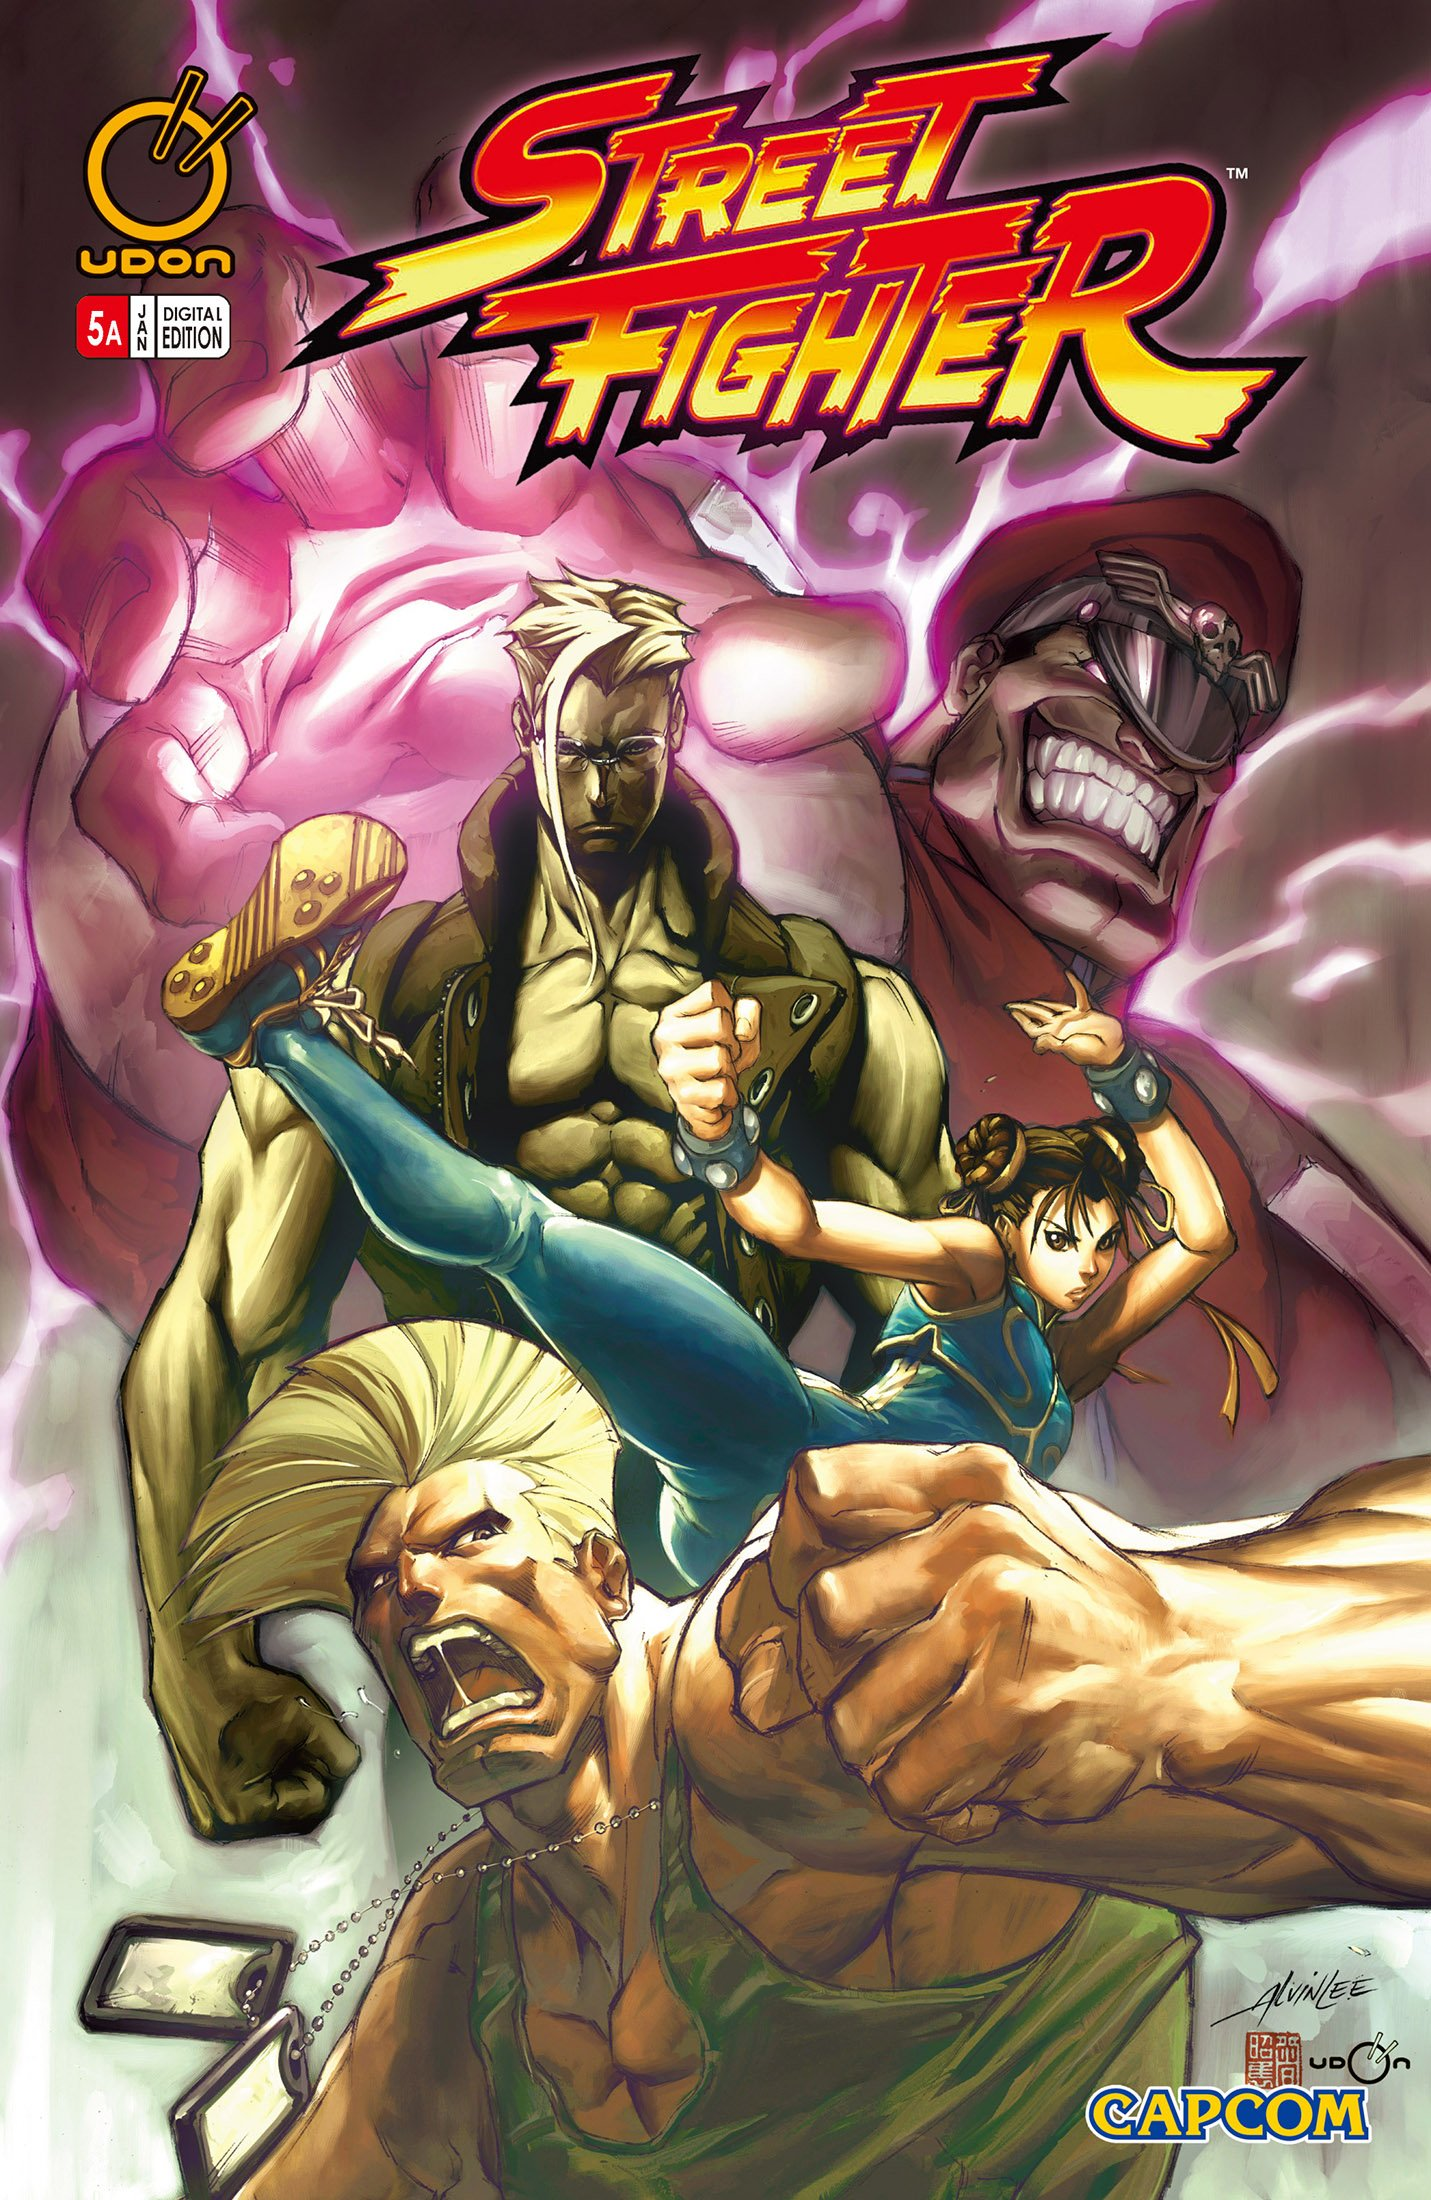 Street Fighter Vol.1 005 (January 2004) (cover a)